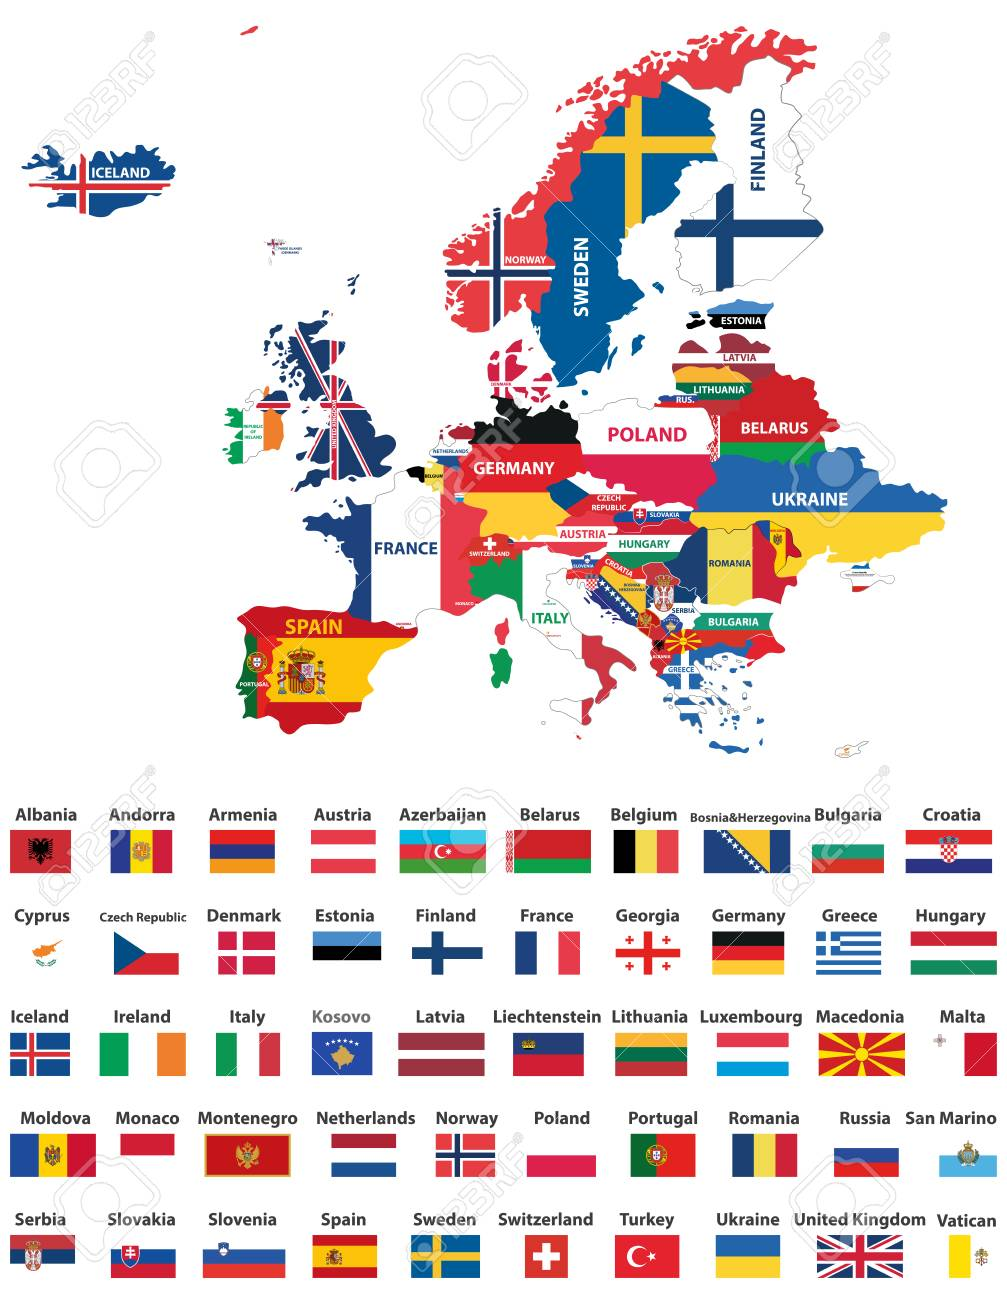 Europe Flag Map Europe Map Mixed With Countries National Flags. All European